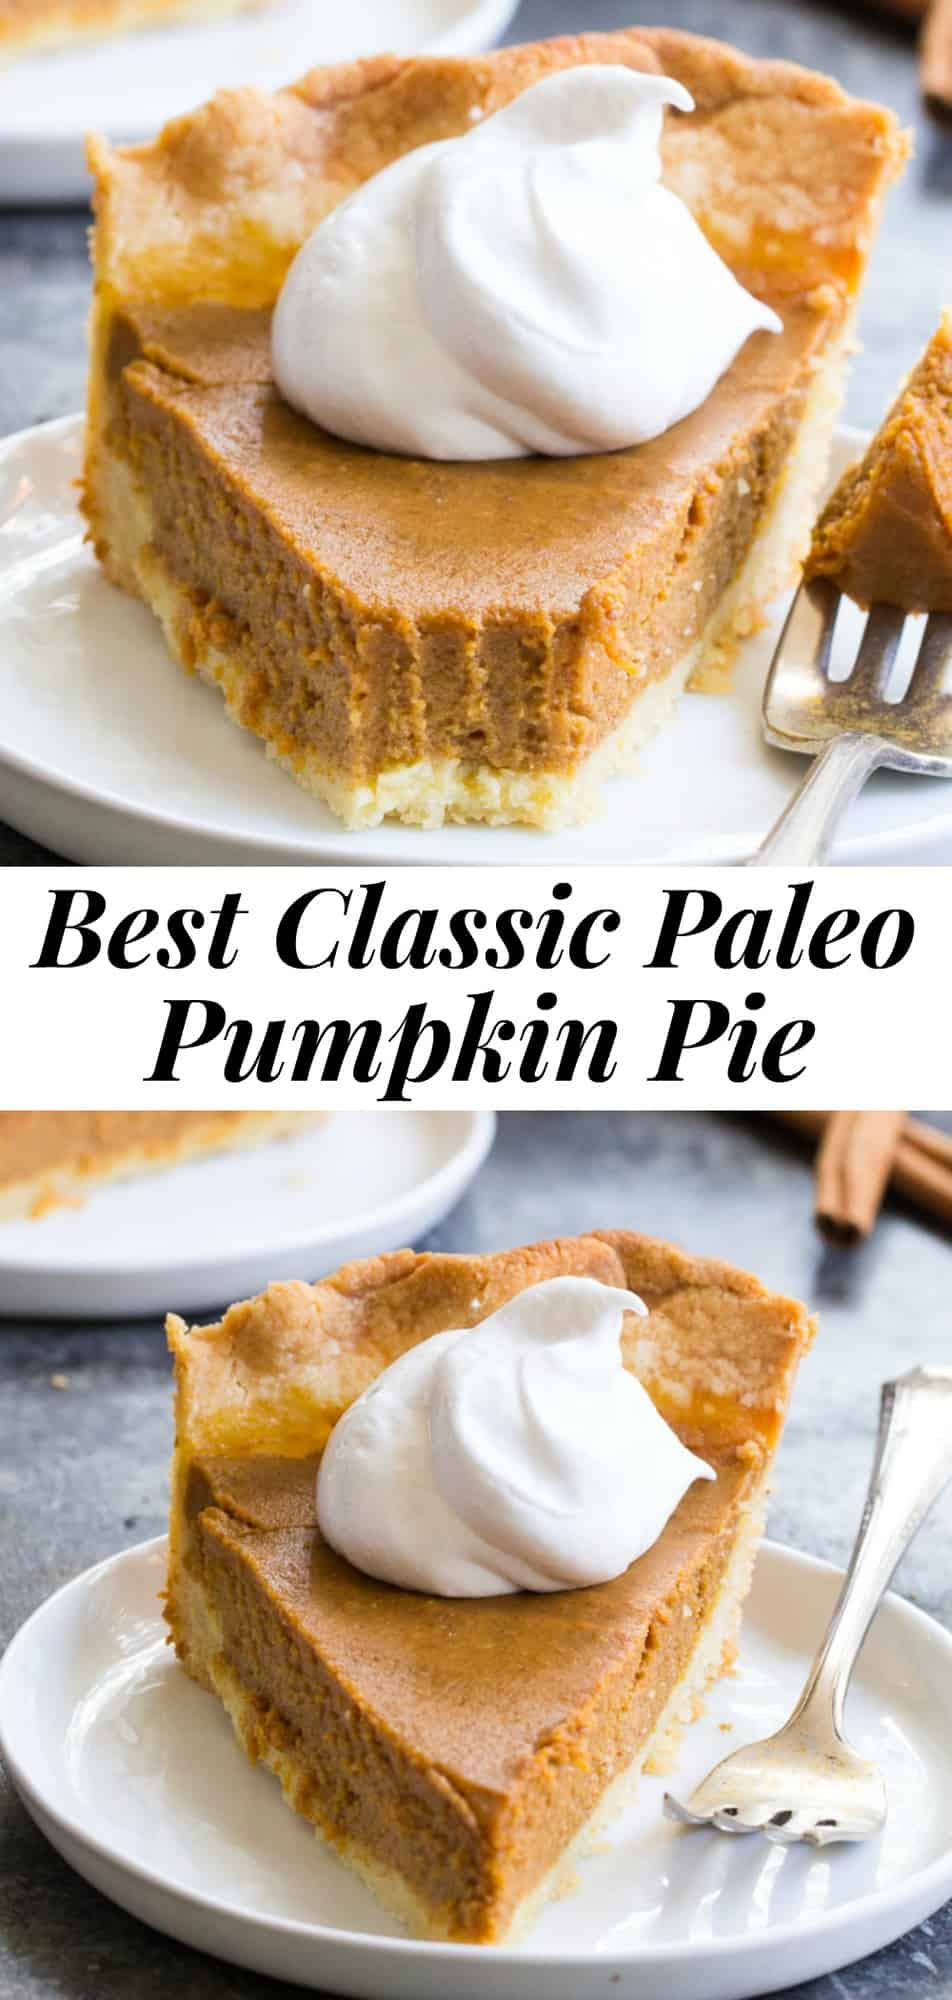 This classic Paleo Pumpkin Pie is just as delicious as any traditional pie you've made! A buttery, flaky paleo pie crust is filled with creamy dairy free pumpkin custard and baked to perfection for a delectable holiday dessert. Great with coconut whipped cream, gluten free, grain free, family approved! #paleo #cleaneating #glutenfree #pumpkinpie #thanksgiving